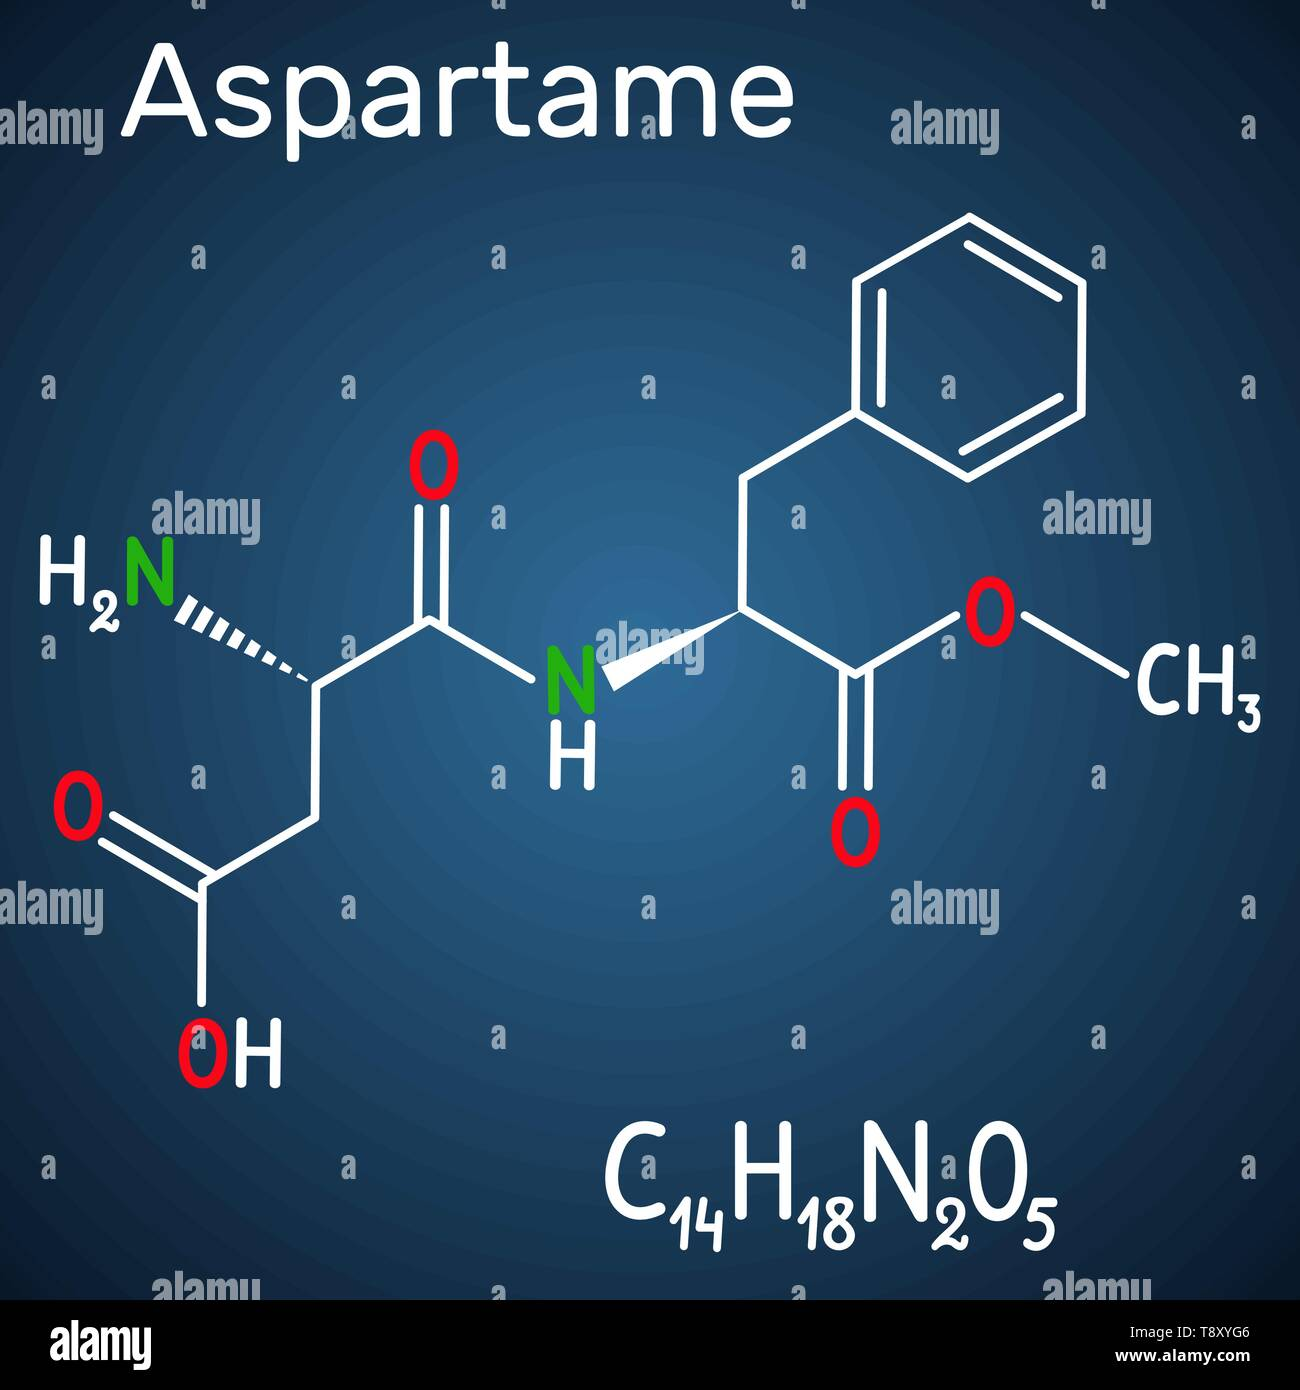 Aspartame, APM, molecule. Sugar substitute and E951. Structural chemical formula and molecule model on the dark blue background. Vector illustration - Stock Image